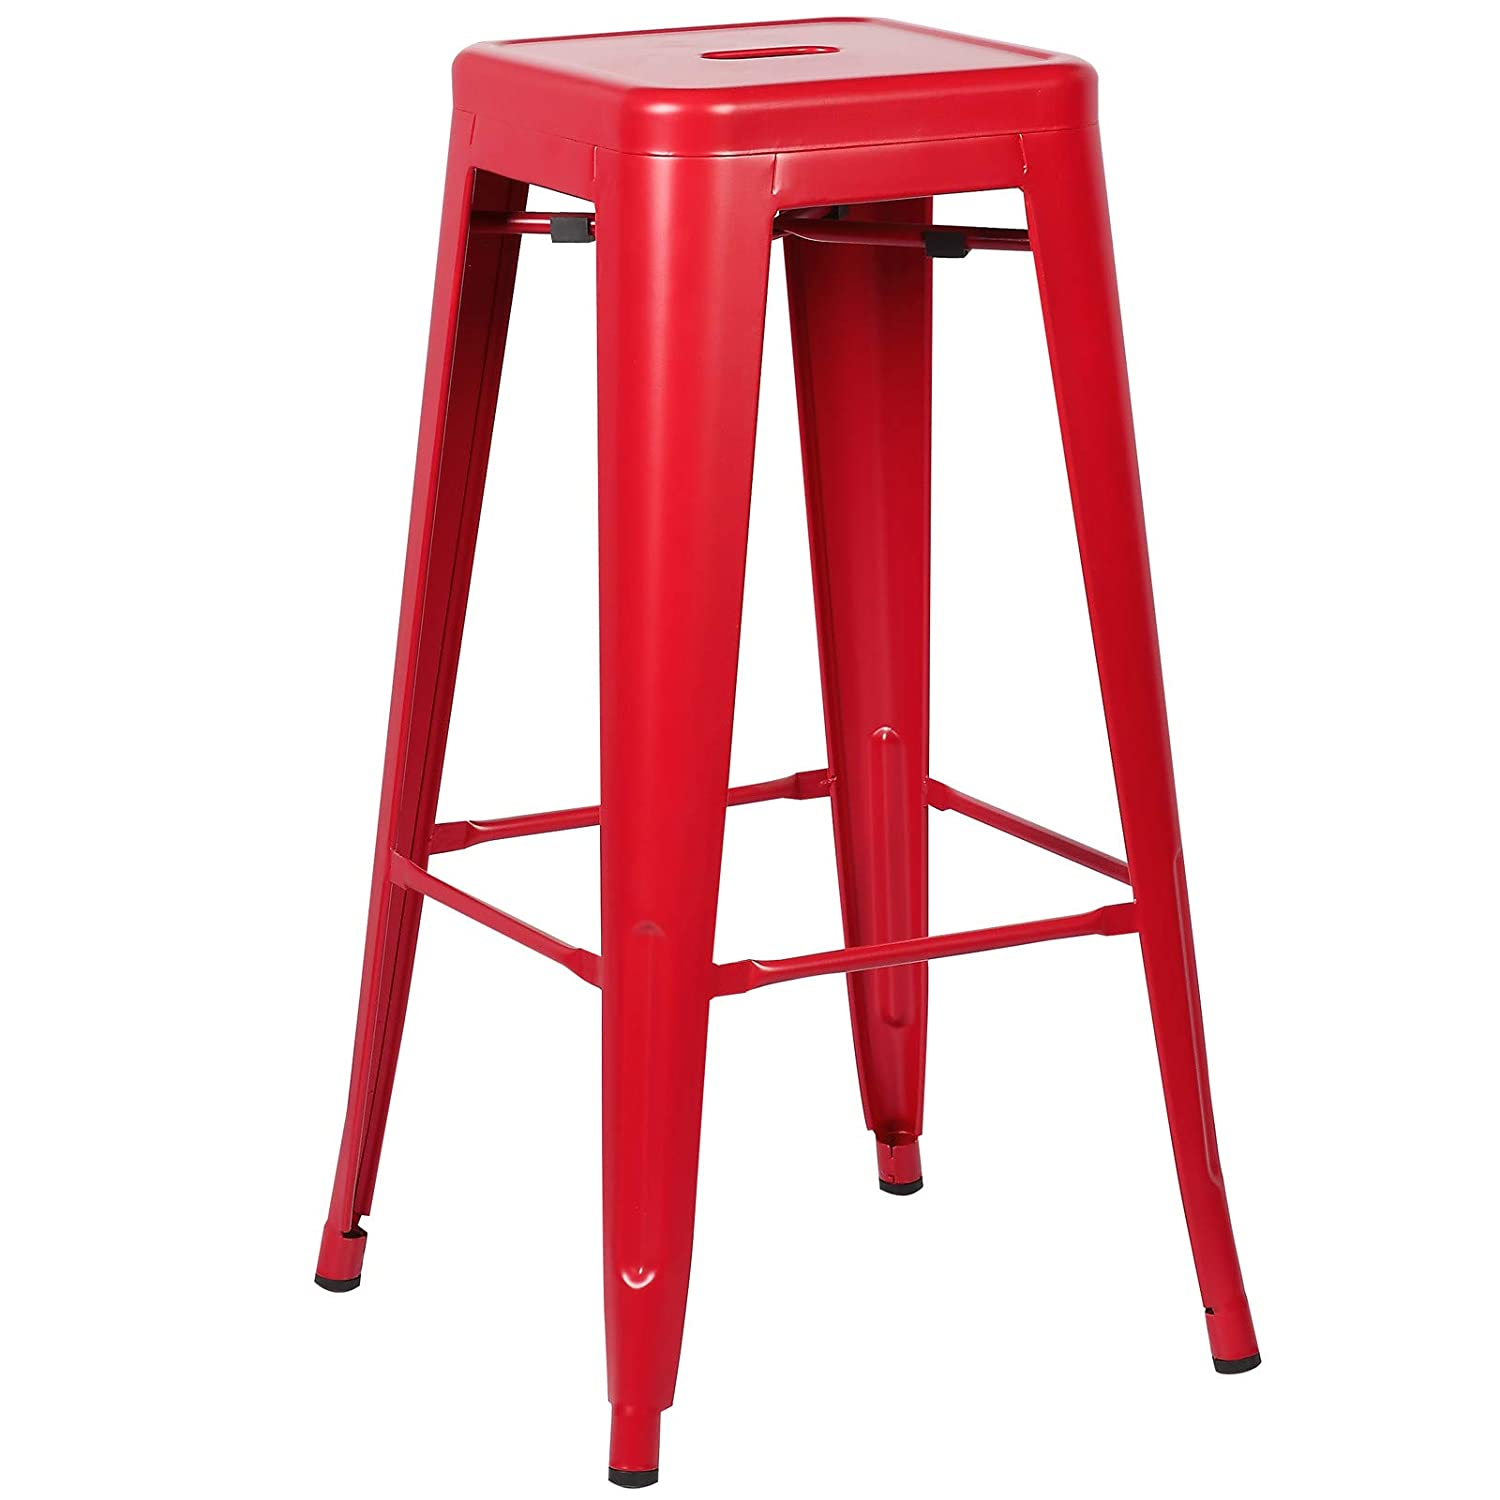 Poly and Bark Trattoria 30 Inch Counter Height Industrial Metal Bar Stool, Stackable, Red